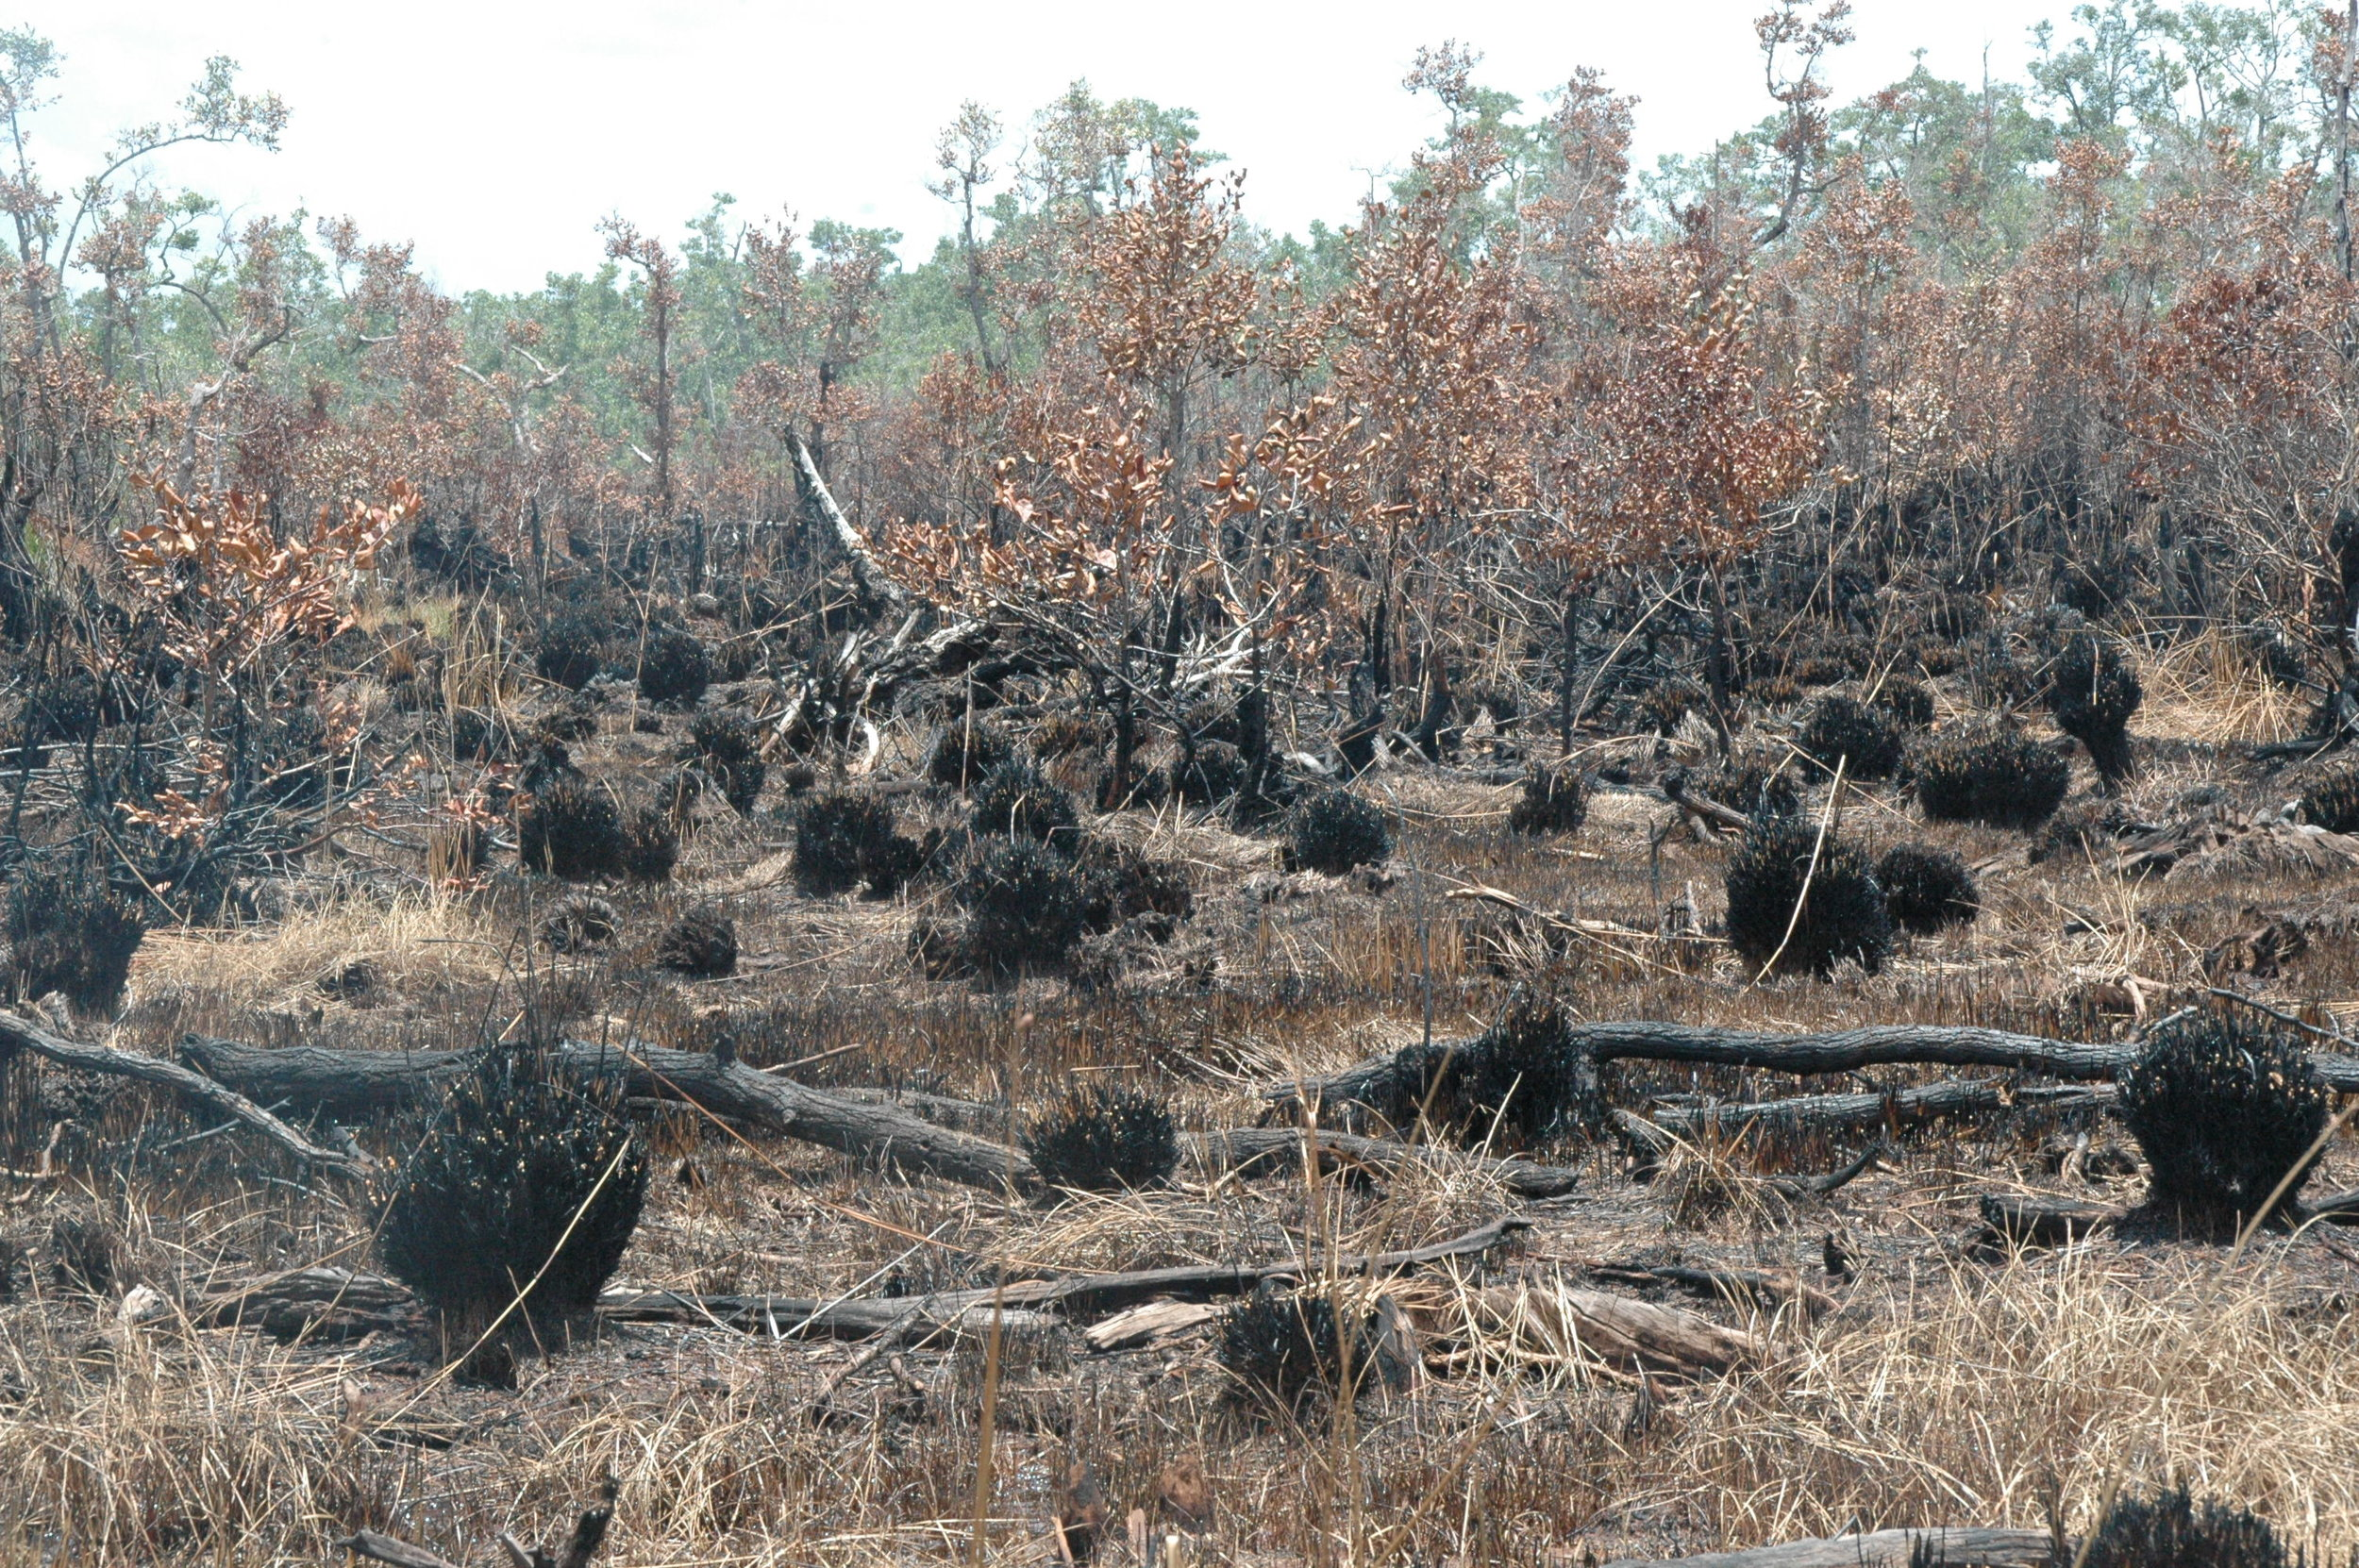 Recently burnt peatland in Kalimantan.Peat is a hydrocarbon, like coal, and once it ignites, it burns not only on the surface, but also deep into the ground, making these fires nearly impossible to put out without the deluge of water that comes when the rainy season begins.  Photo by GAMBUT staff Sherry Panggabean